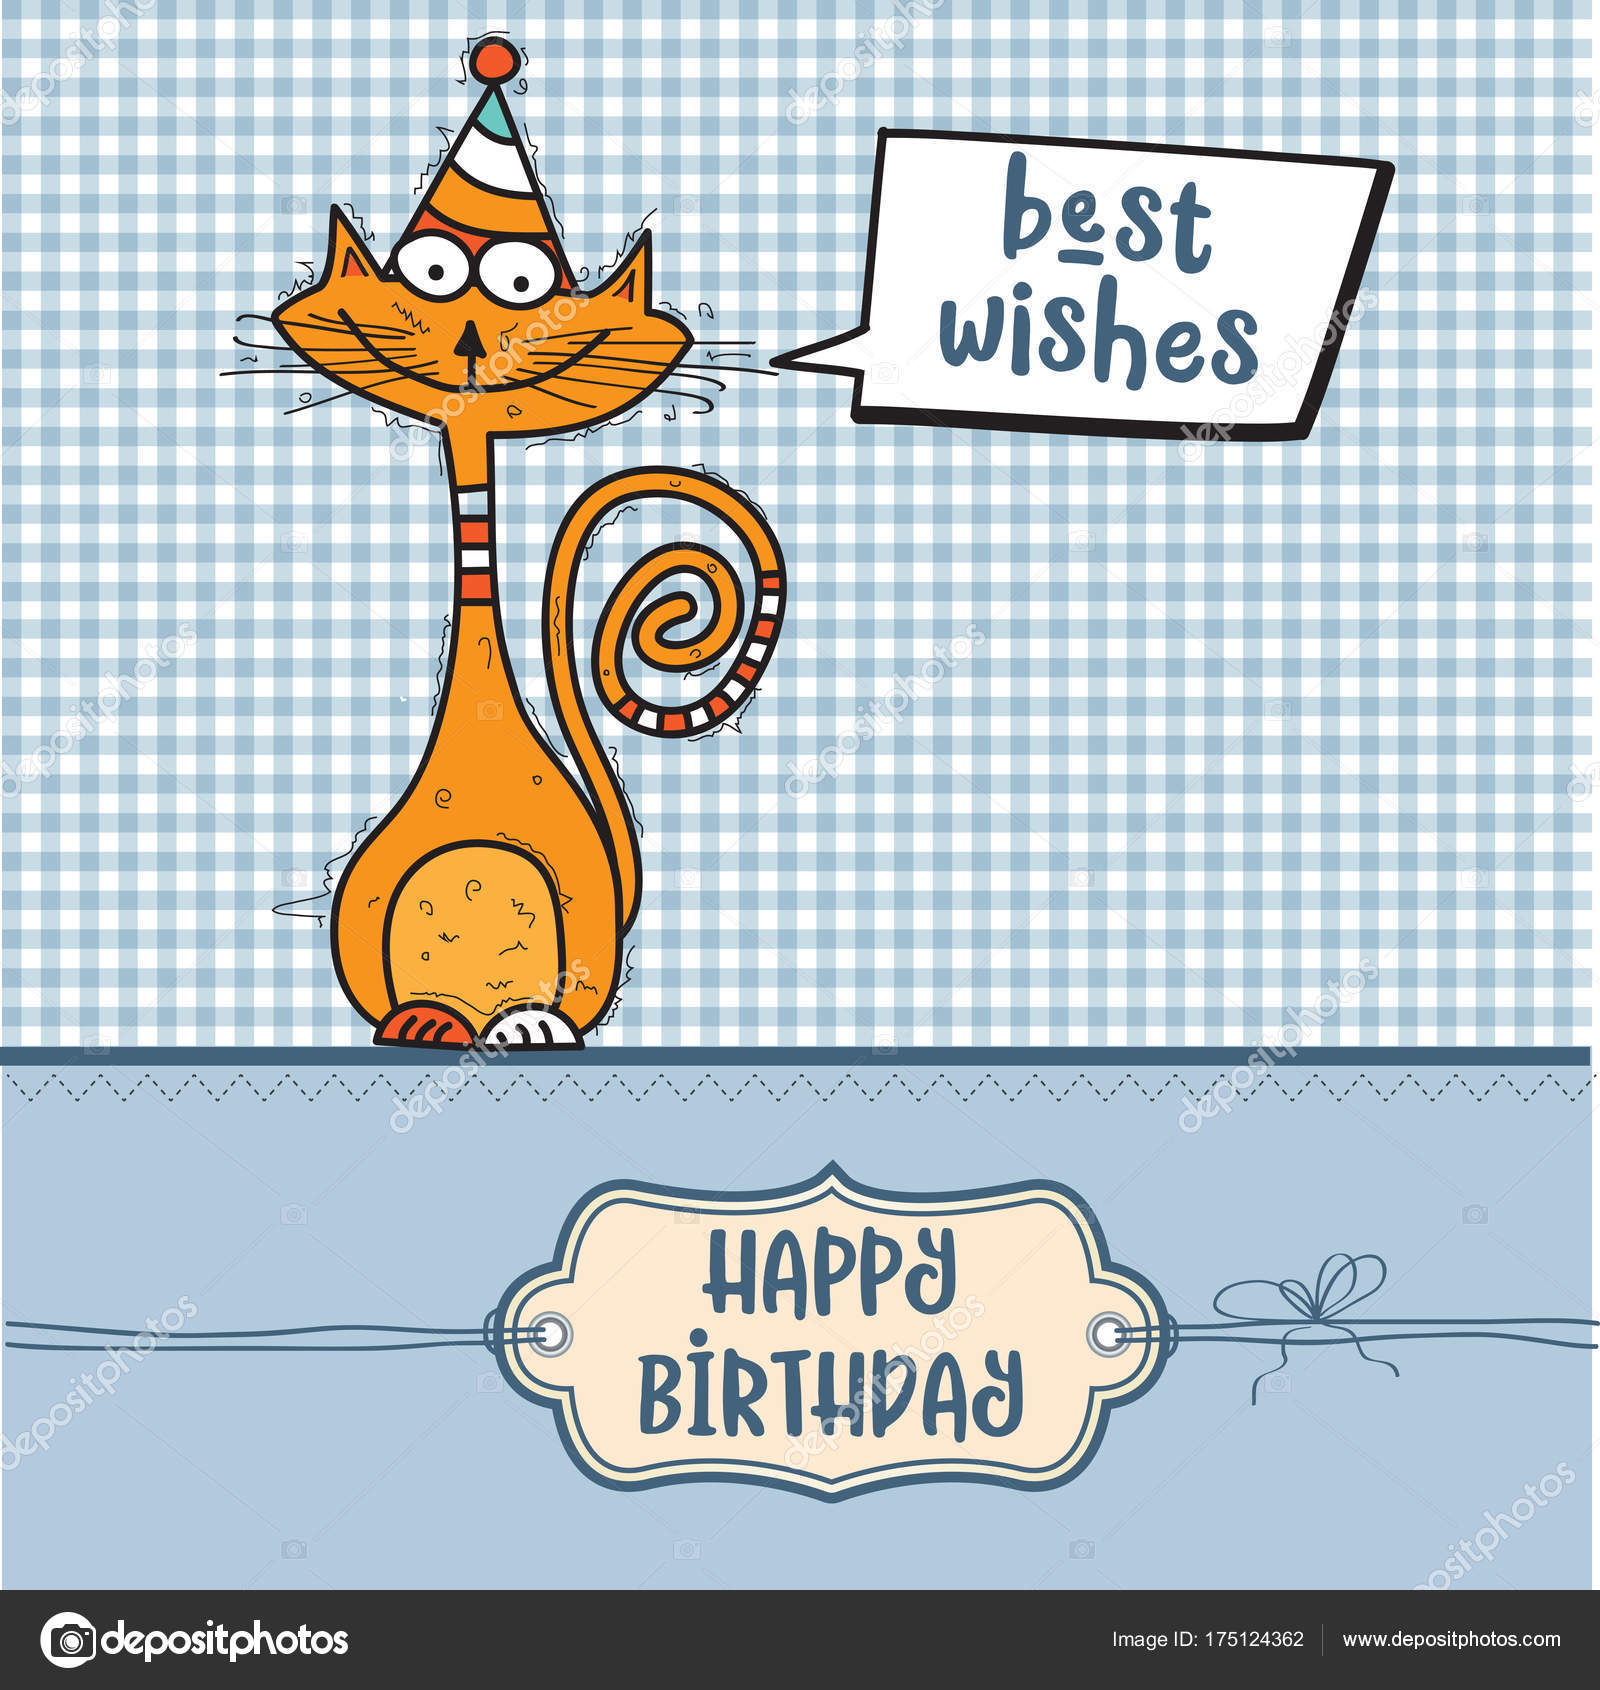 Happy birthday card with funny doodle cat happy birthday card with funny doodle cat voltagebd Images